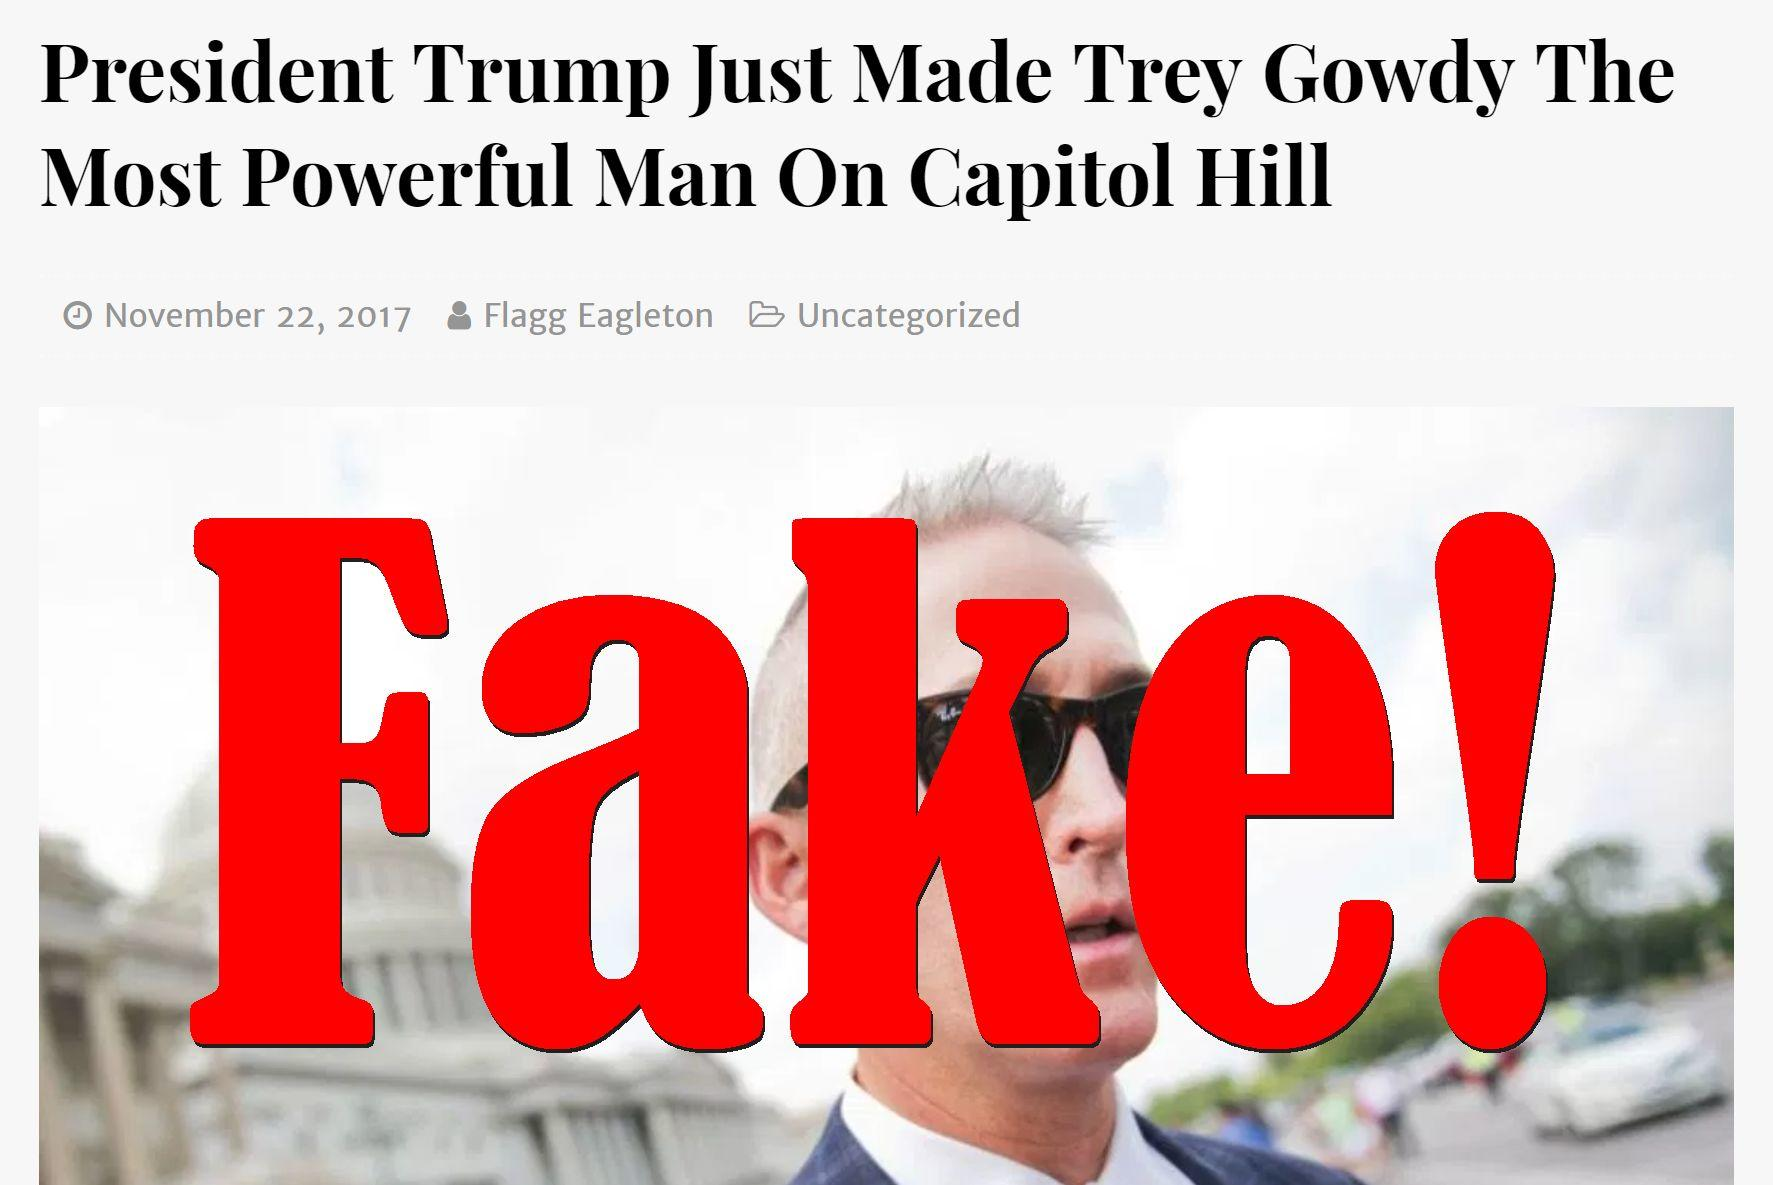 Fake News: President Trump Did NOT Make Trey Gowdy The Most Powerful Man On Capitol Hill